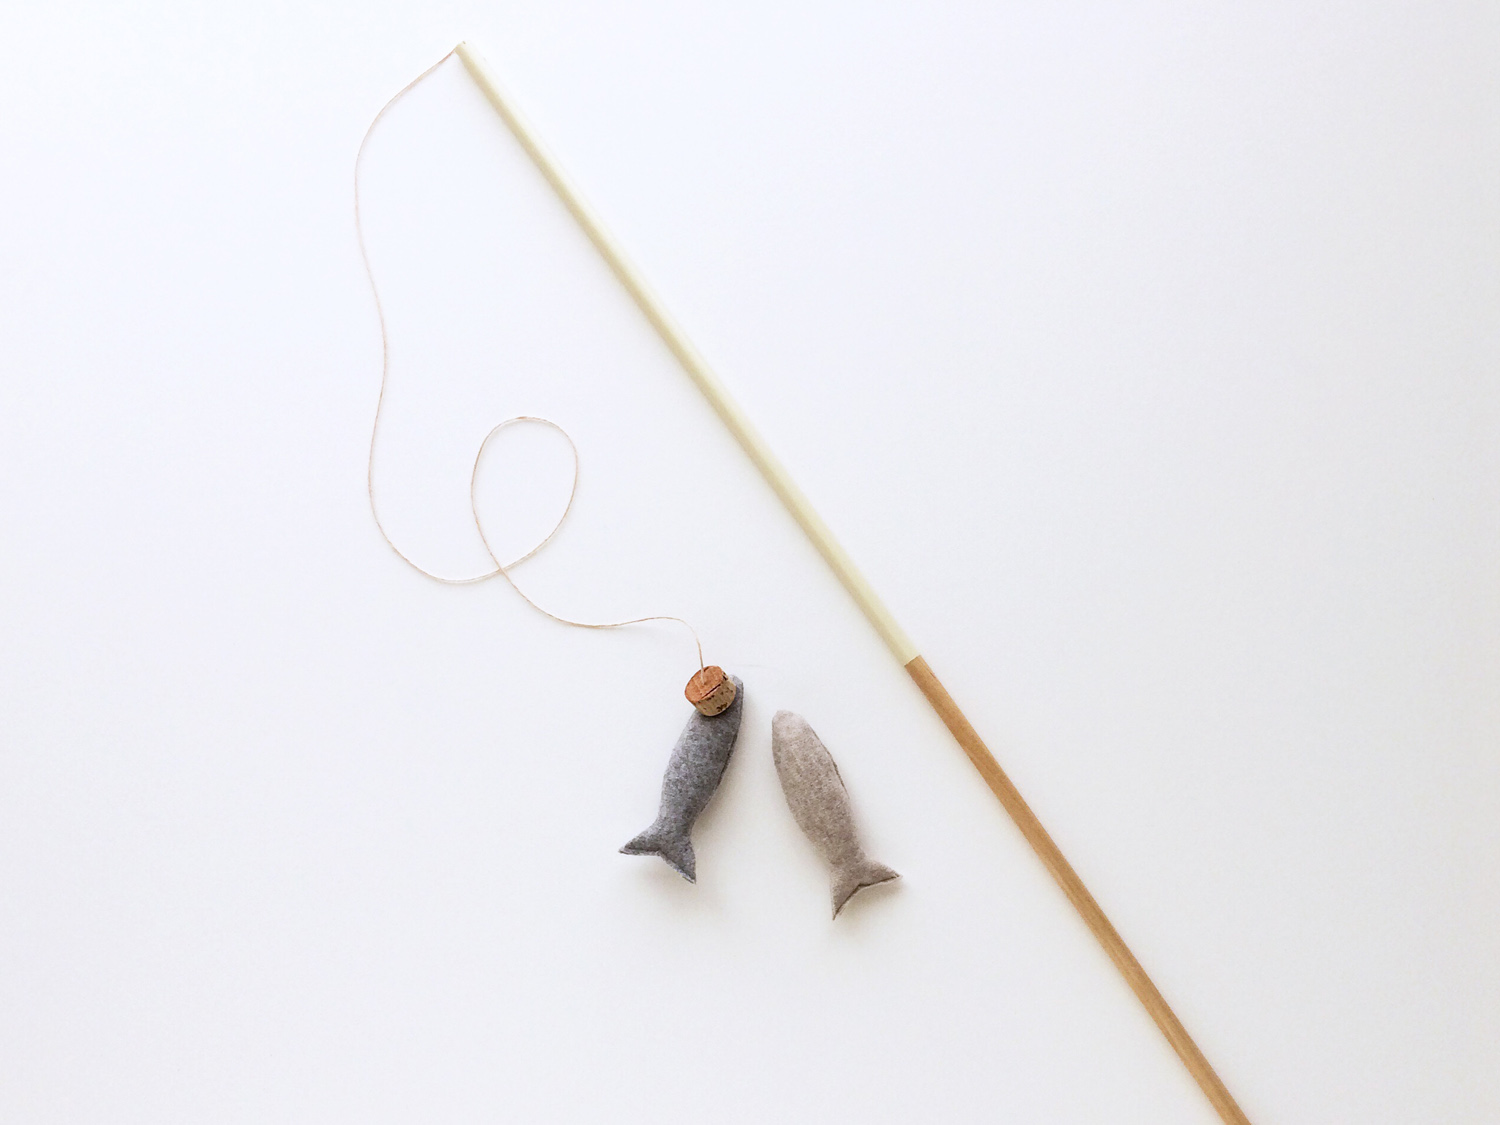 Magnetic fishing rod set with fish lures